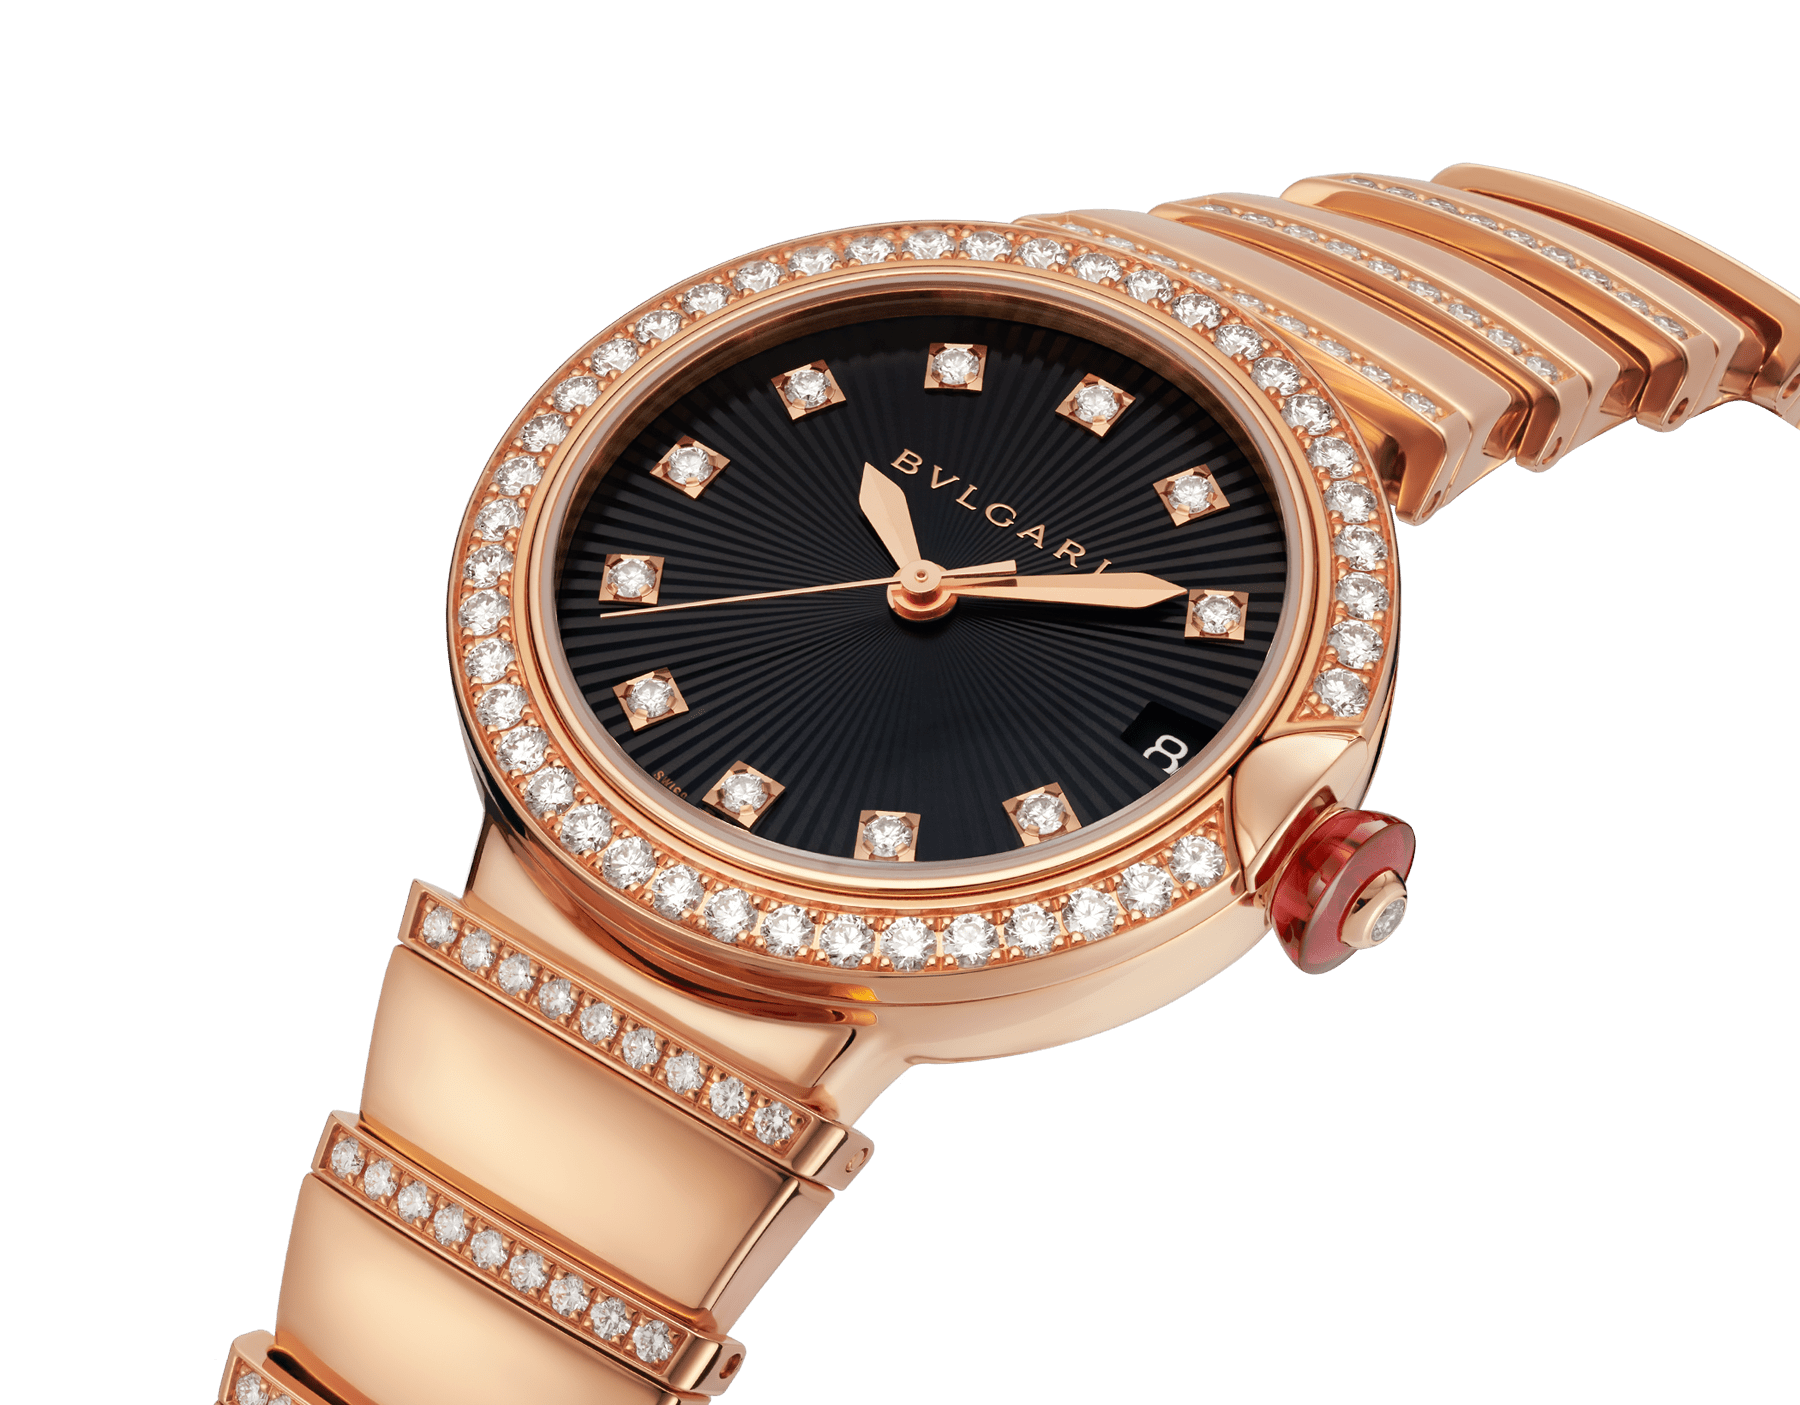 LVCEA watch in 18 kt rose gold and brilliant-cut diamond case and bracelet, with black opaline dial. 102191 image 2